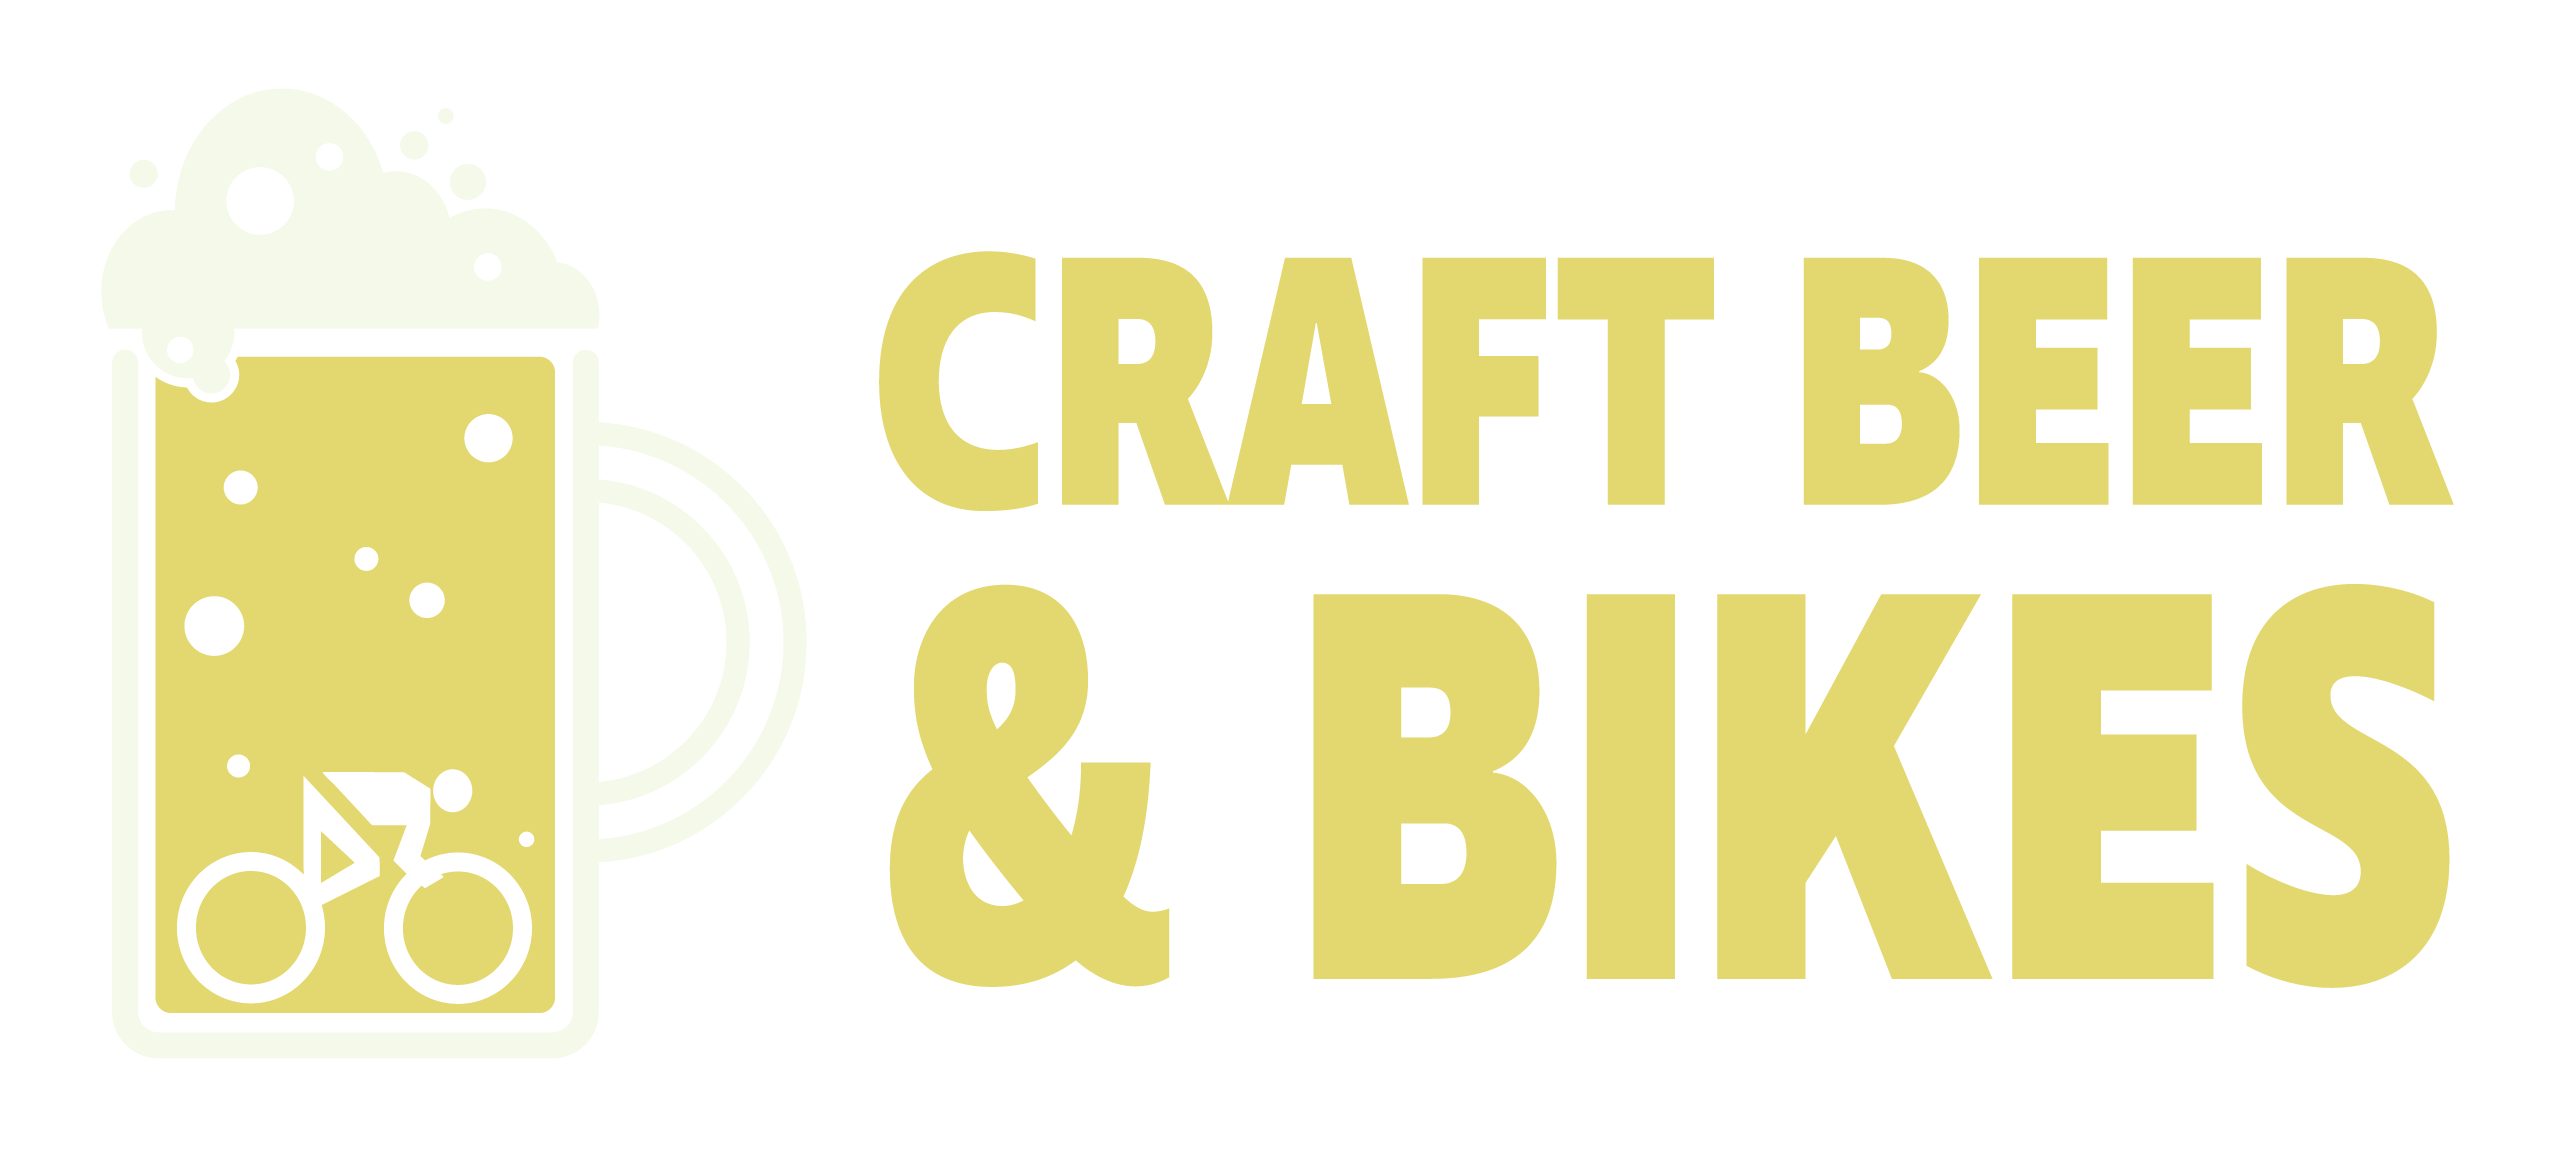 Craft Beer and bikes